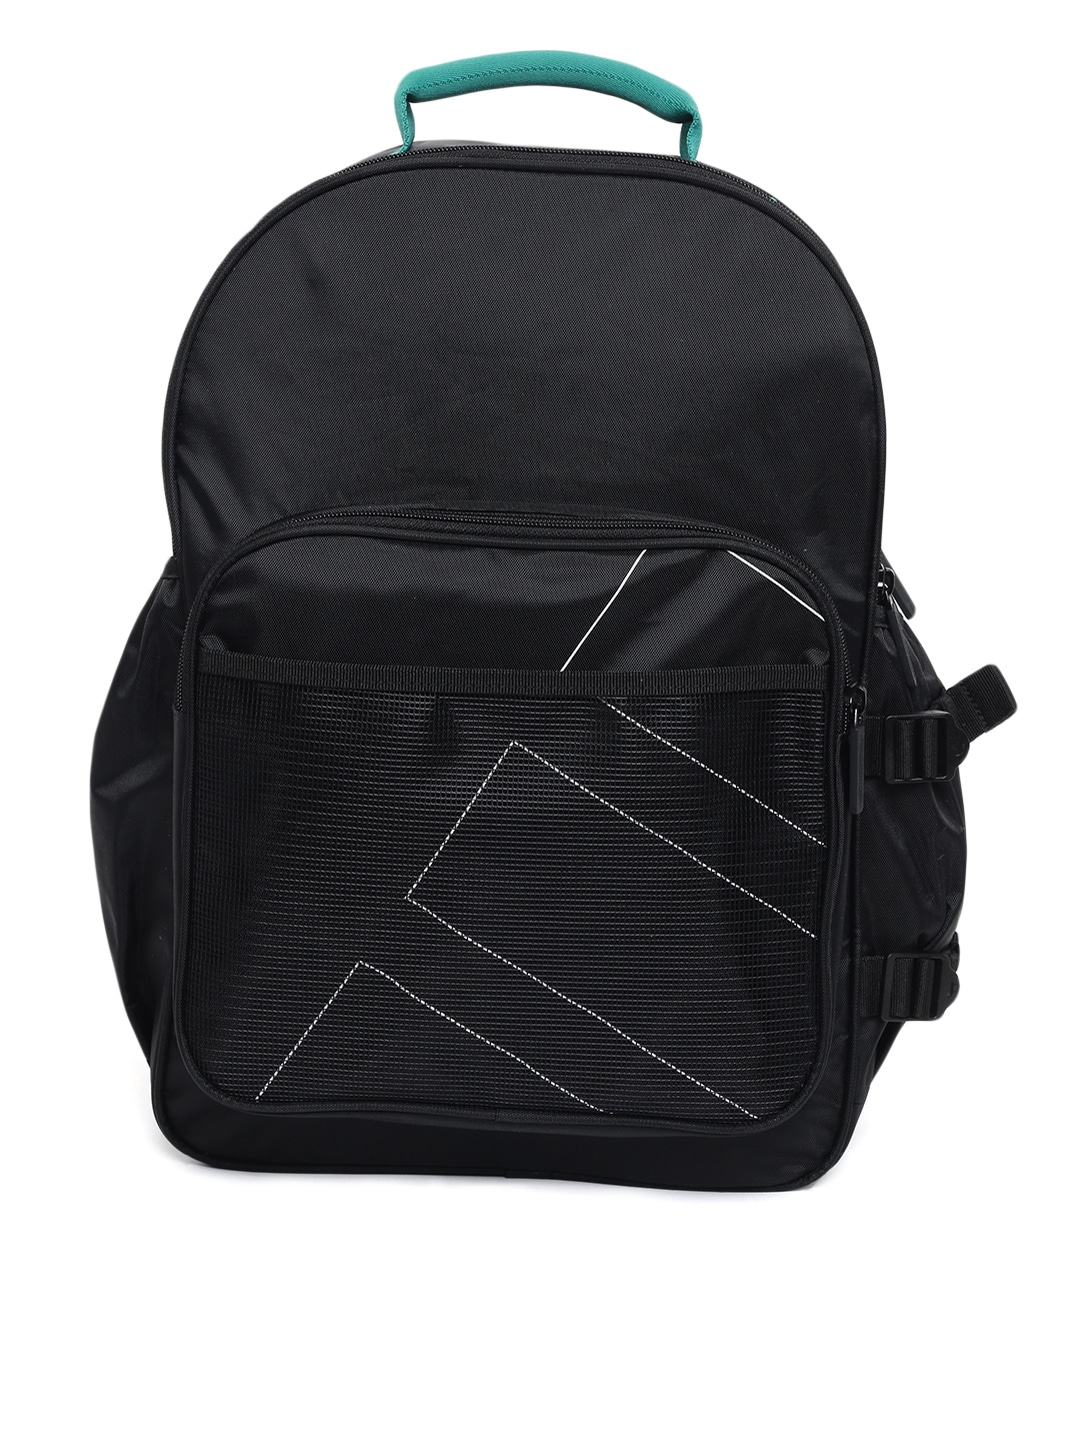 7422b4d884 Adidas Original Backpack - Buy Adidas Original Backpack online in India